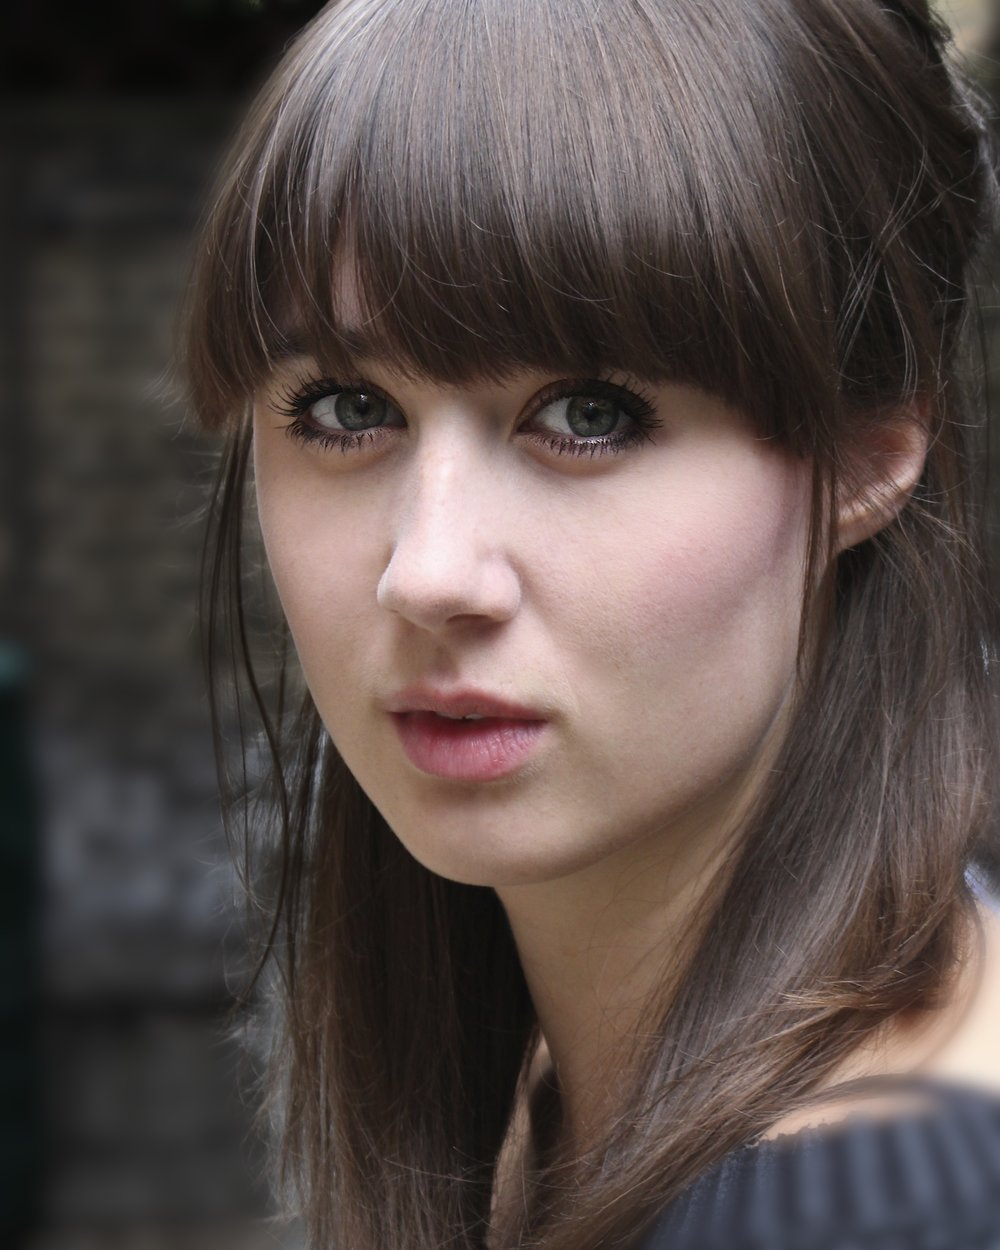 Molly-New-Headshot-Final-Crop.jpg